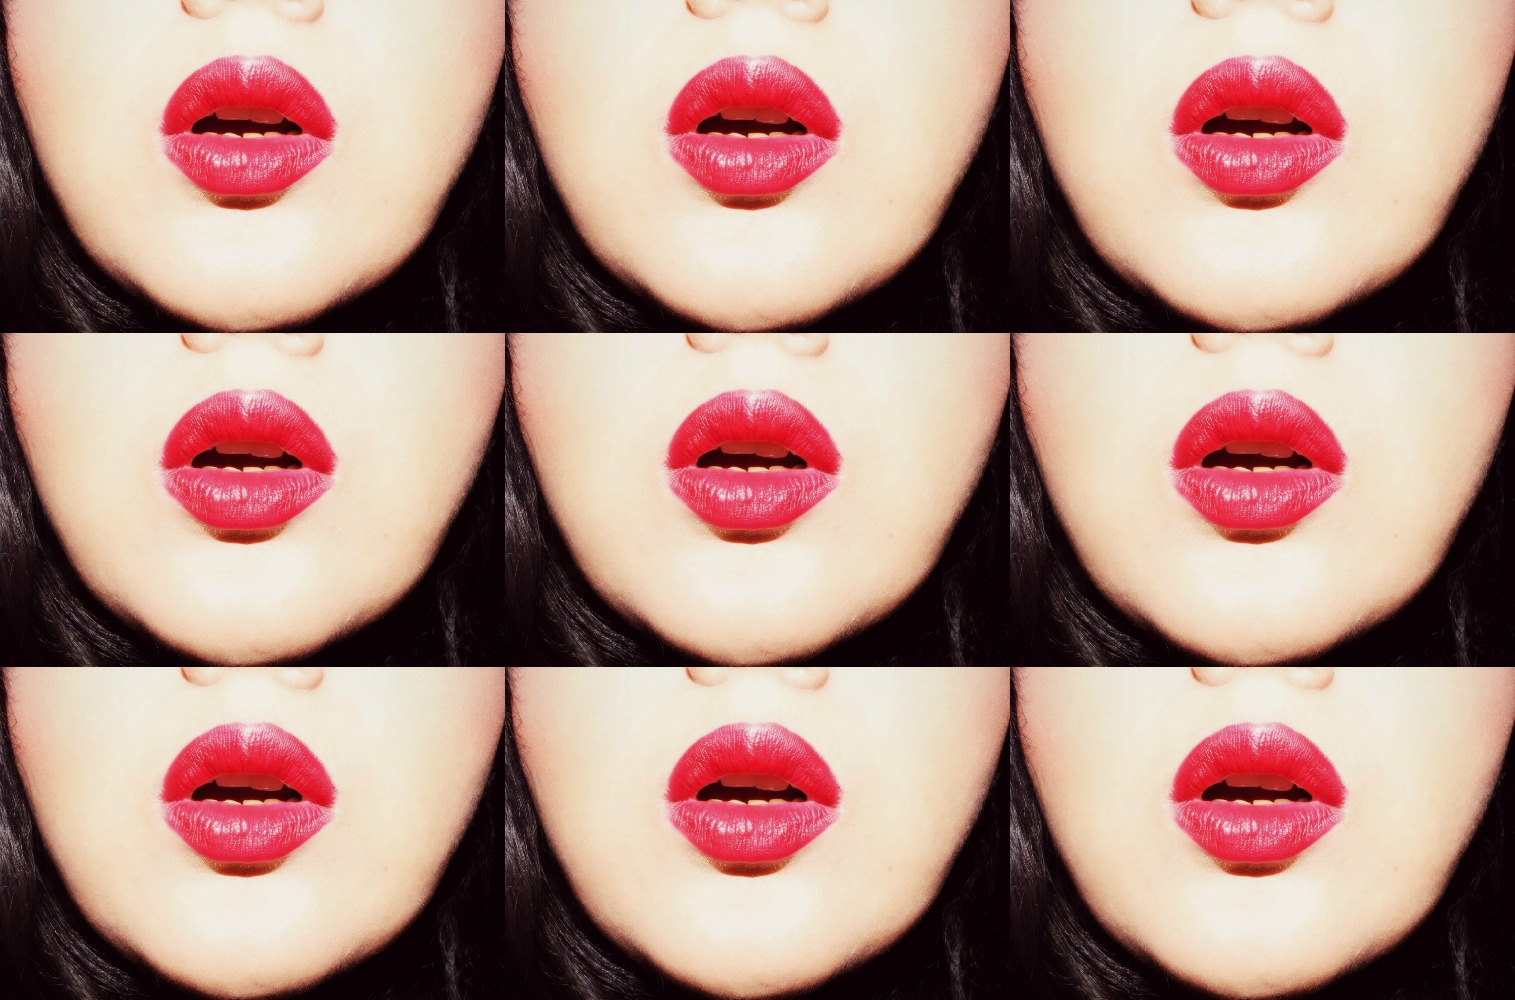 Tumblr Smoke Lips Gallery for red lips collageRed Lips Collage Tumblr